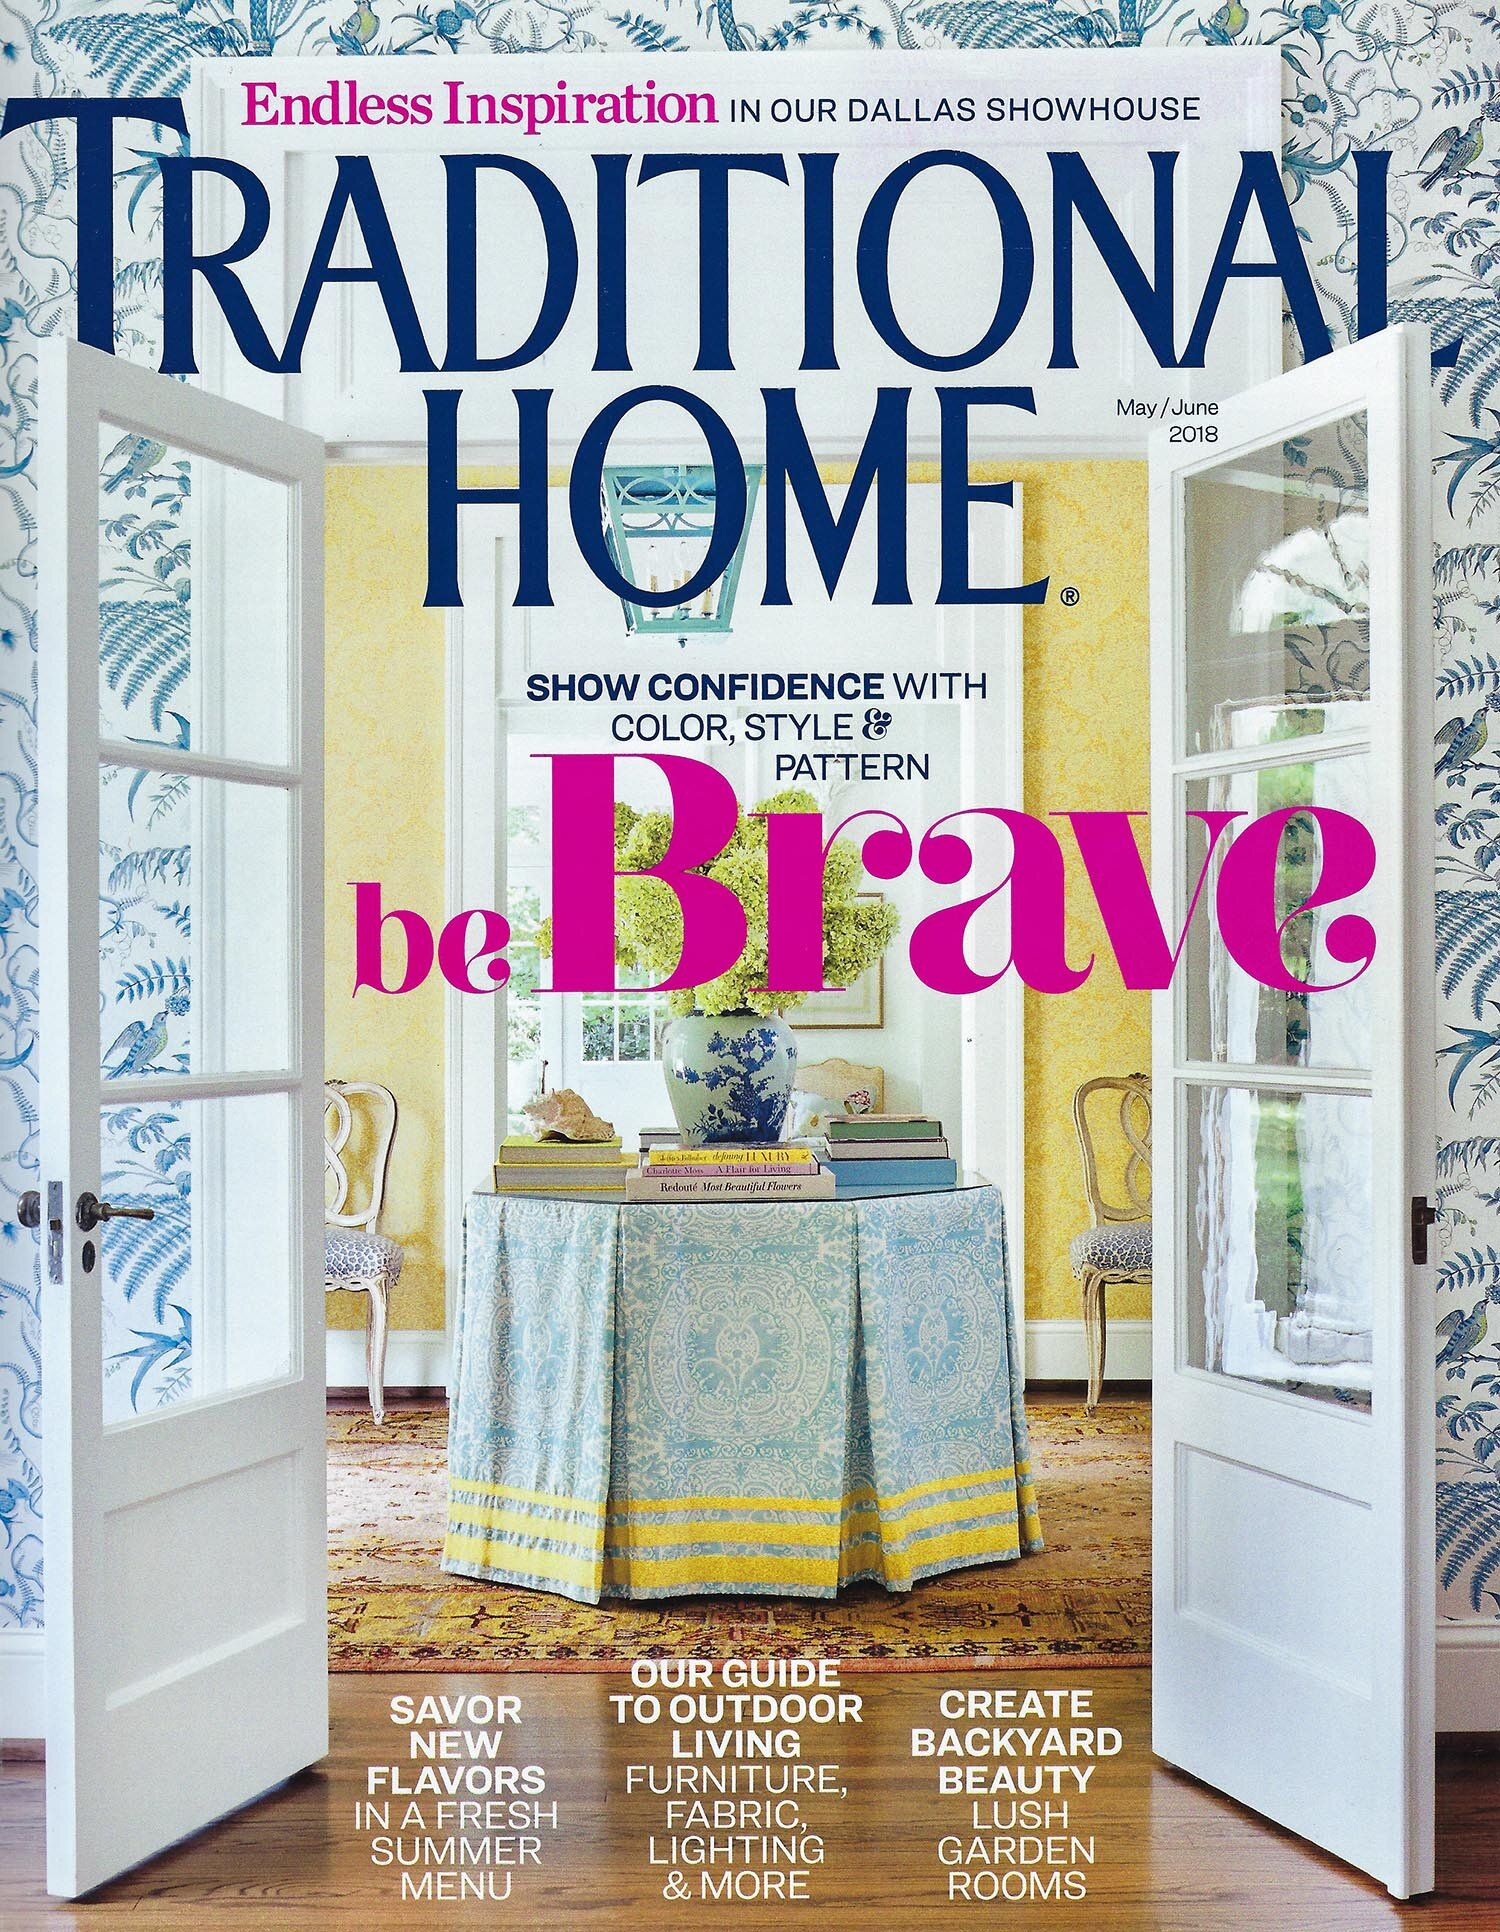 TraditionalHomecover.jpg